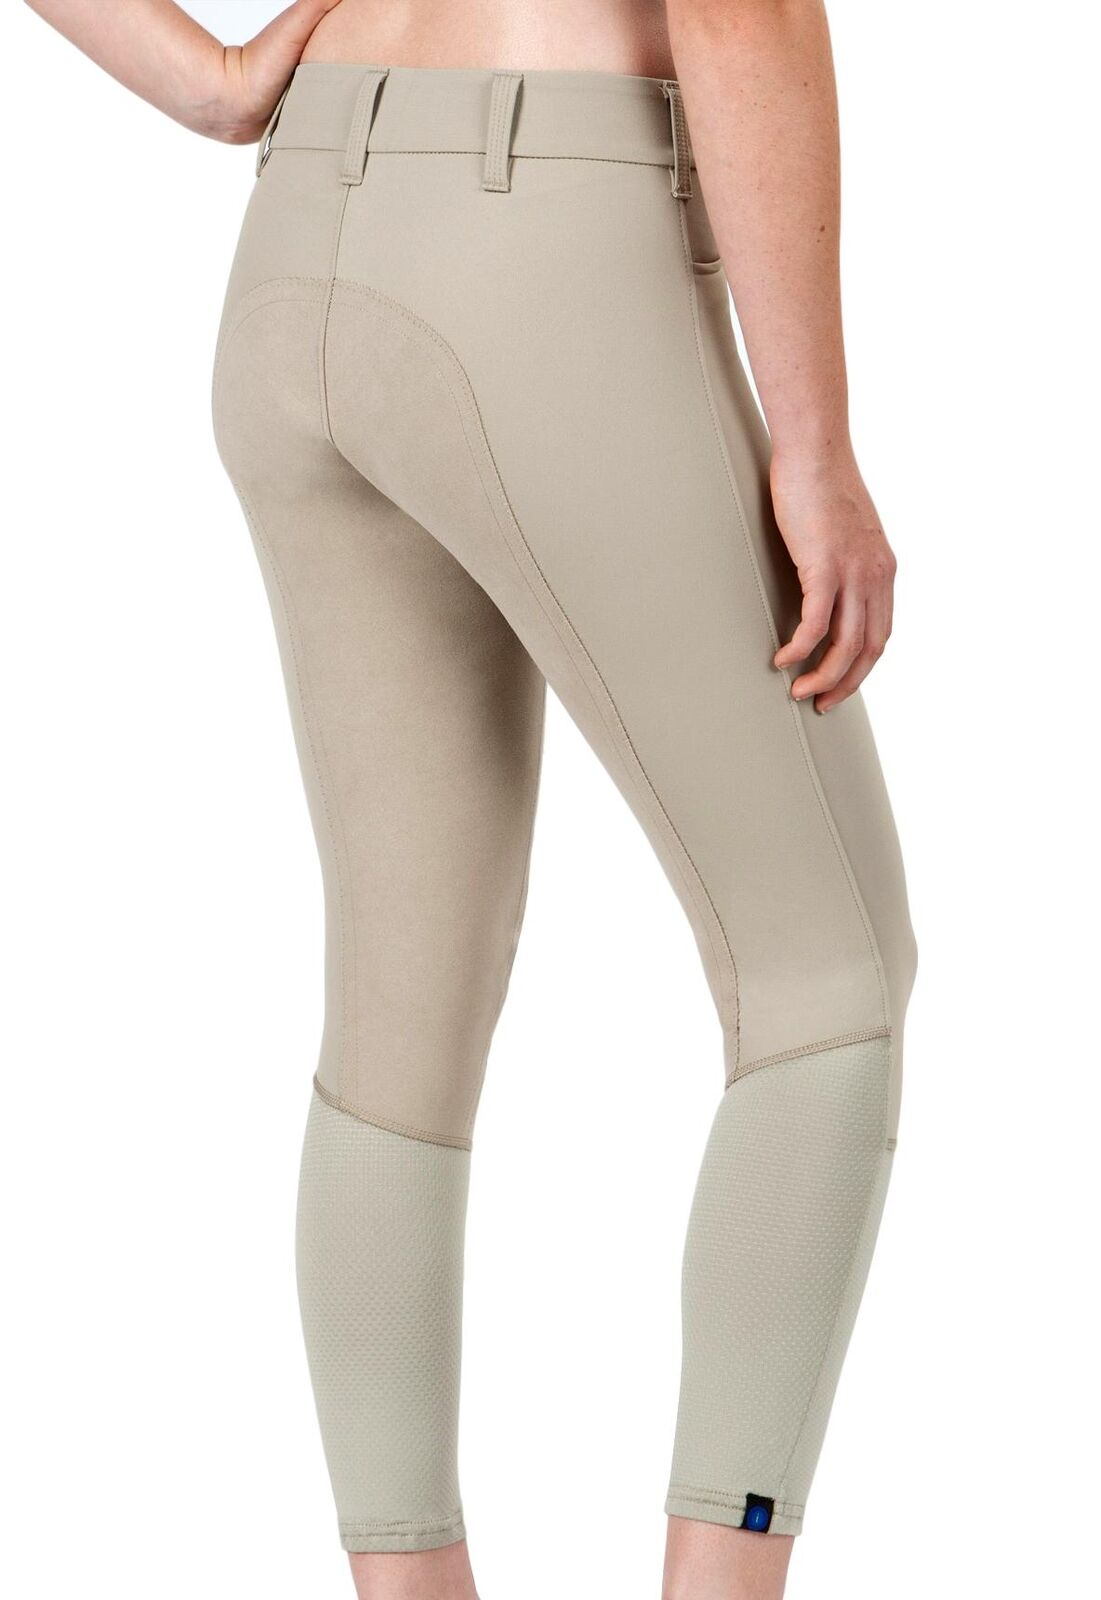 Irideon Hampshire Full Seat Riding Breeches Body Contouring Panels